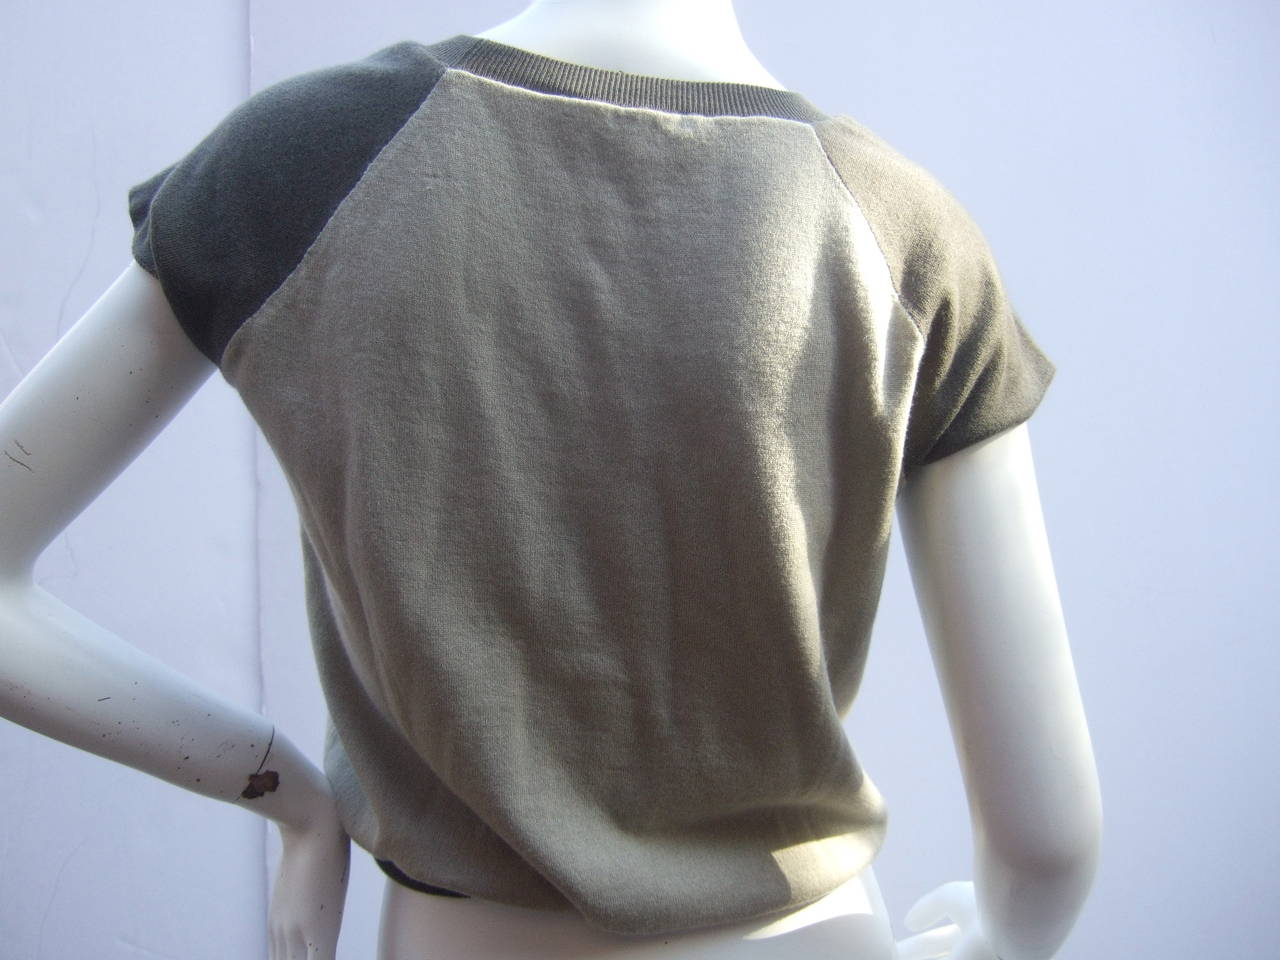 Louis Vuitton Cashmere & Cotton Knit Top Made in Italy Size M 6